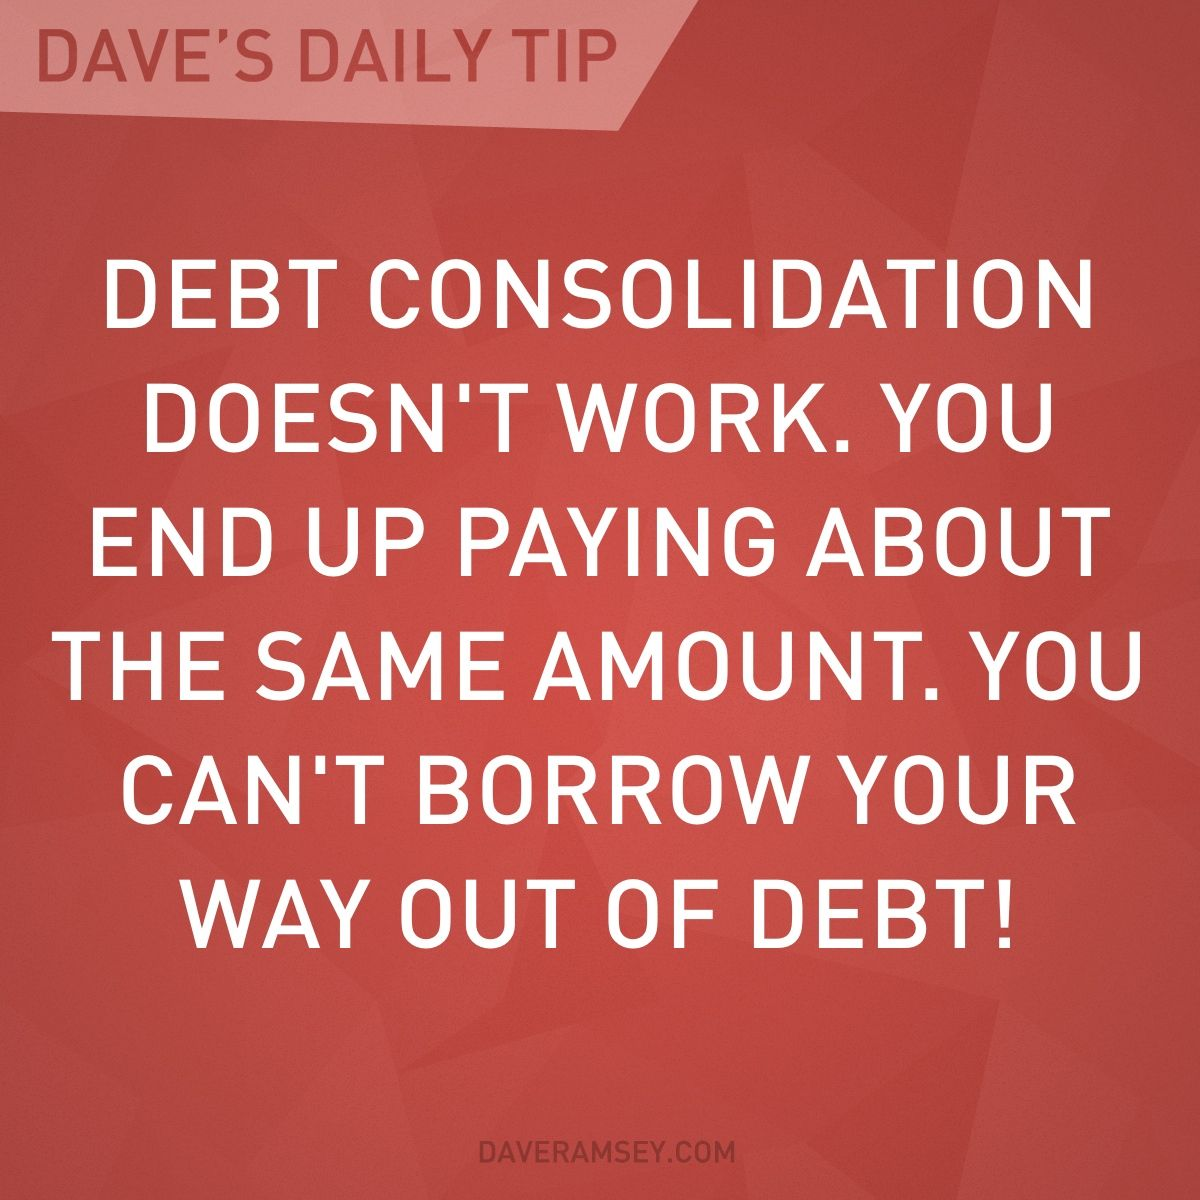 You can't borrow your way out of debt.